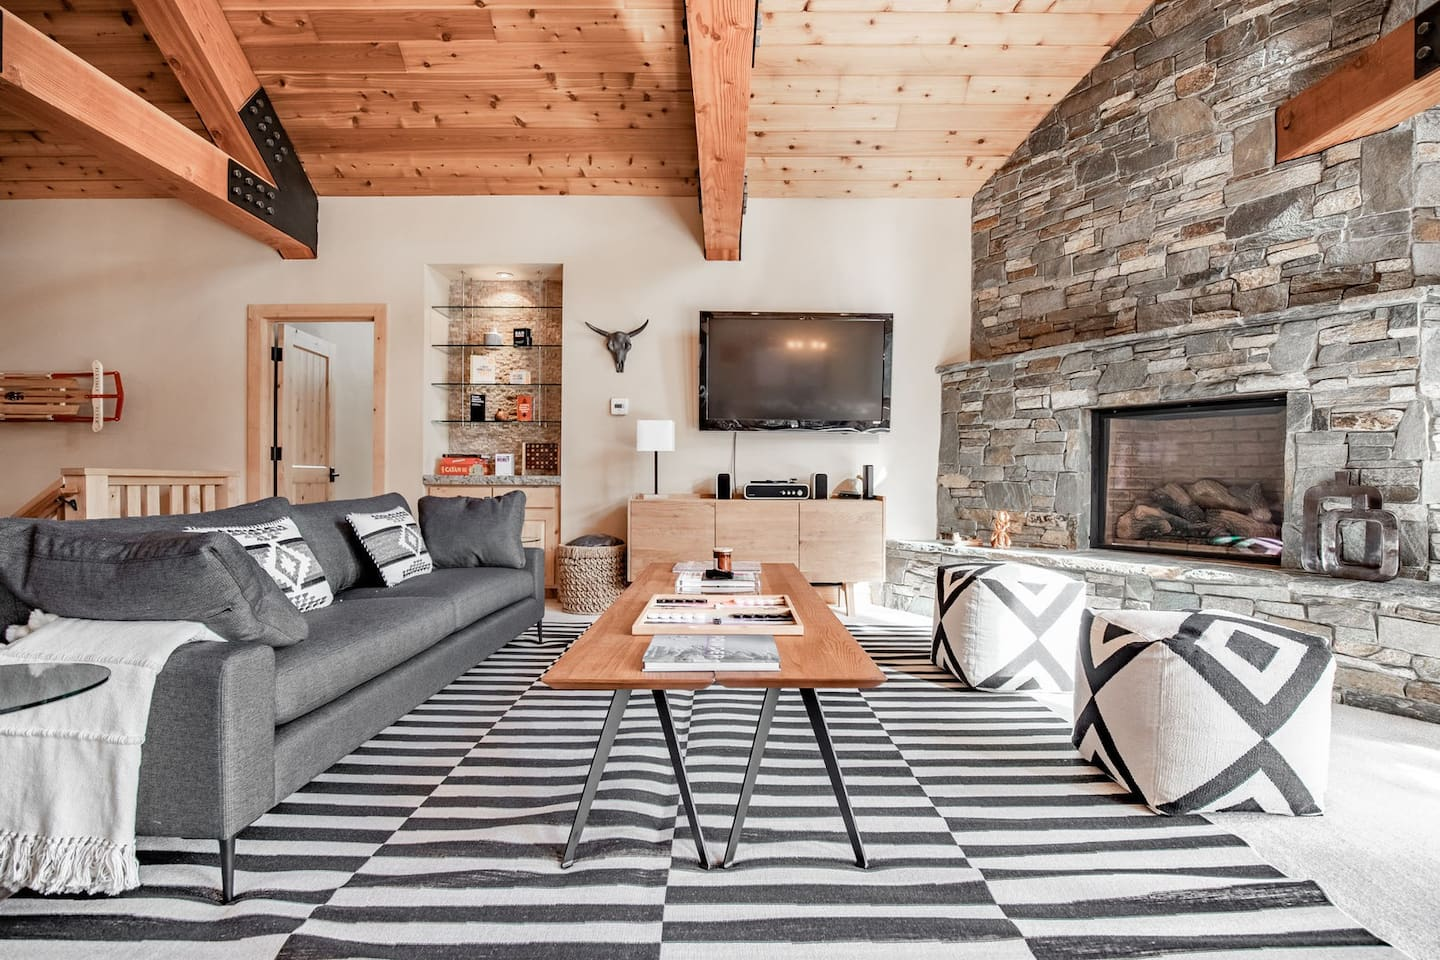 Exposed wooden beams bring a touch of cozy to the space.